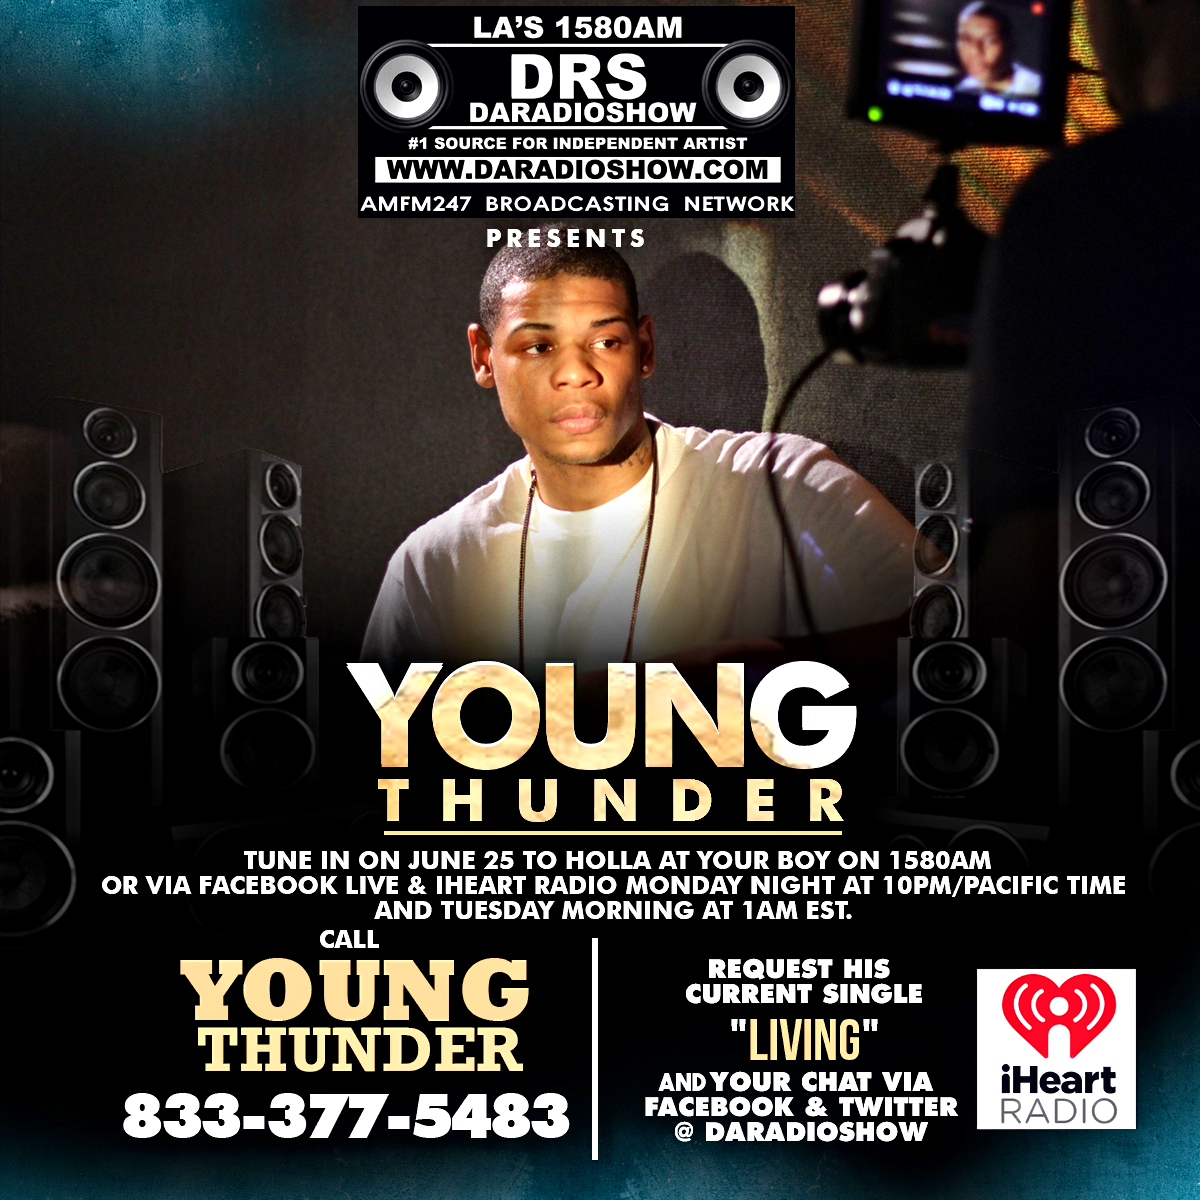 Young Thunder live on DARADIOSHOW June 25th.